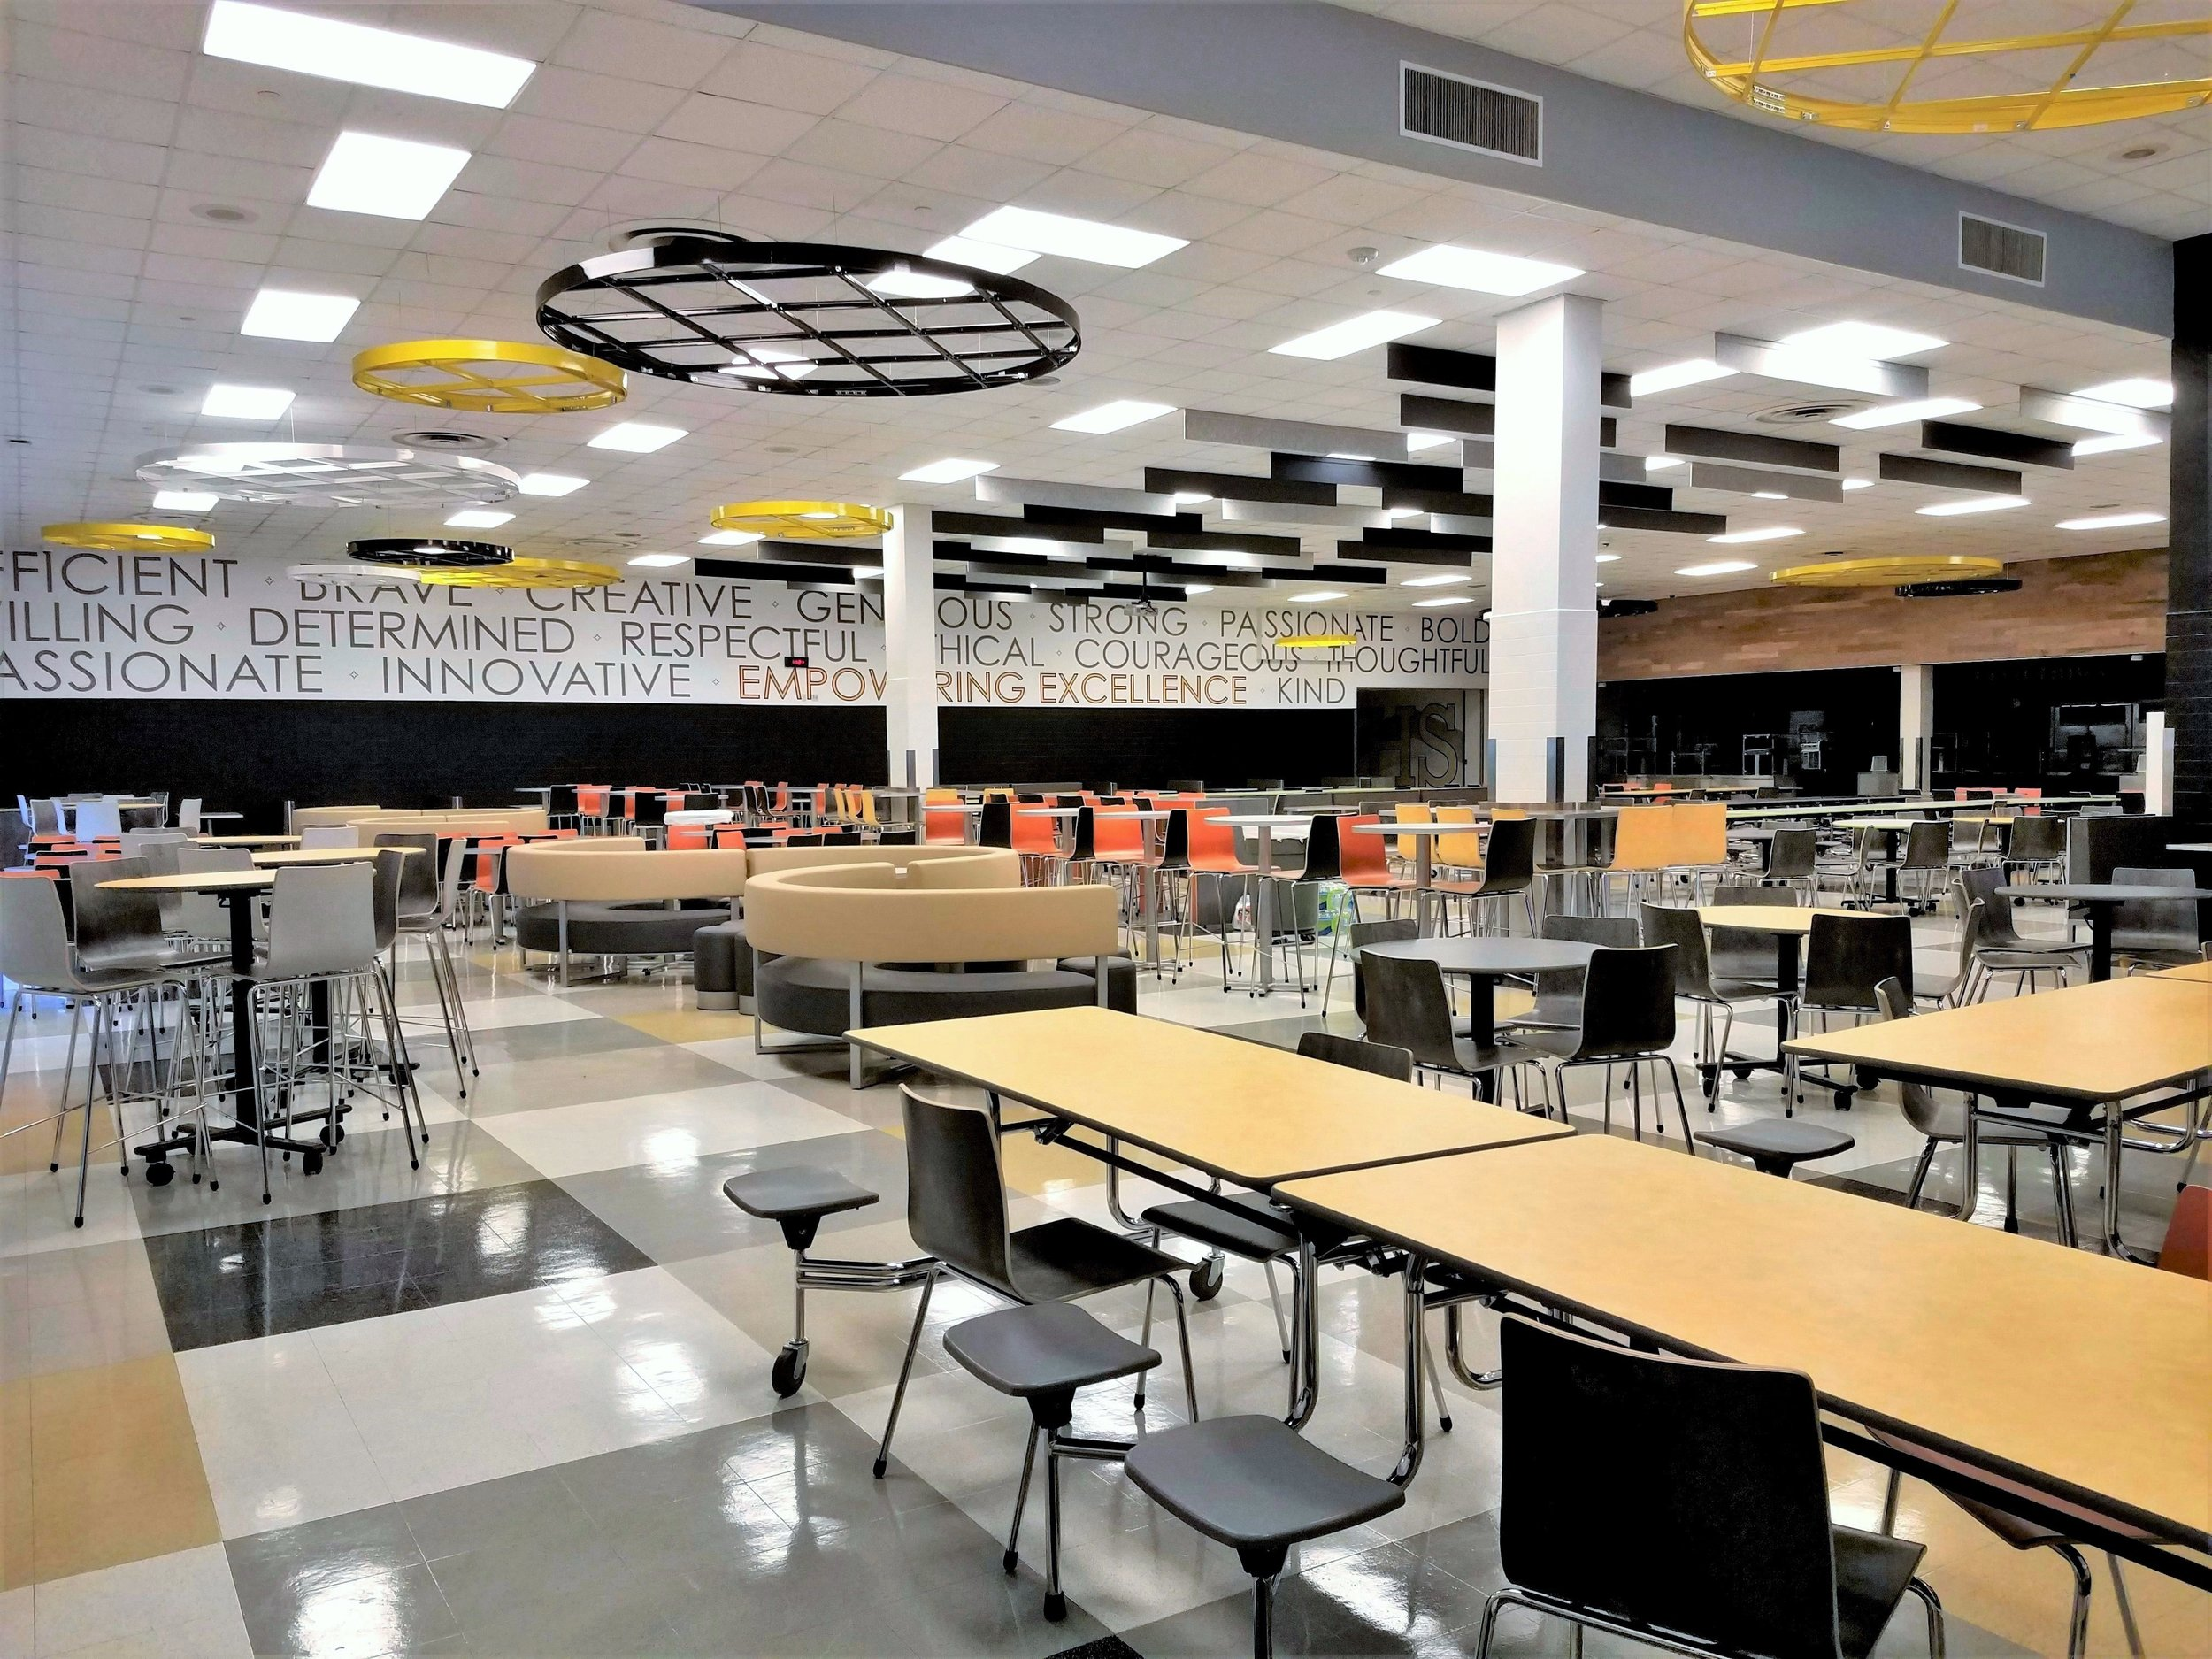 Irving_High_School_cafeteria.jpg